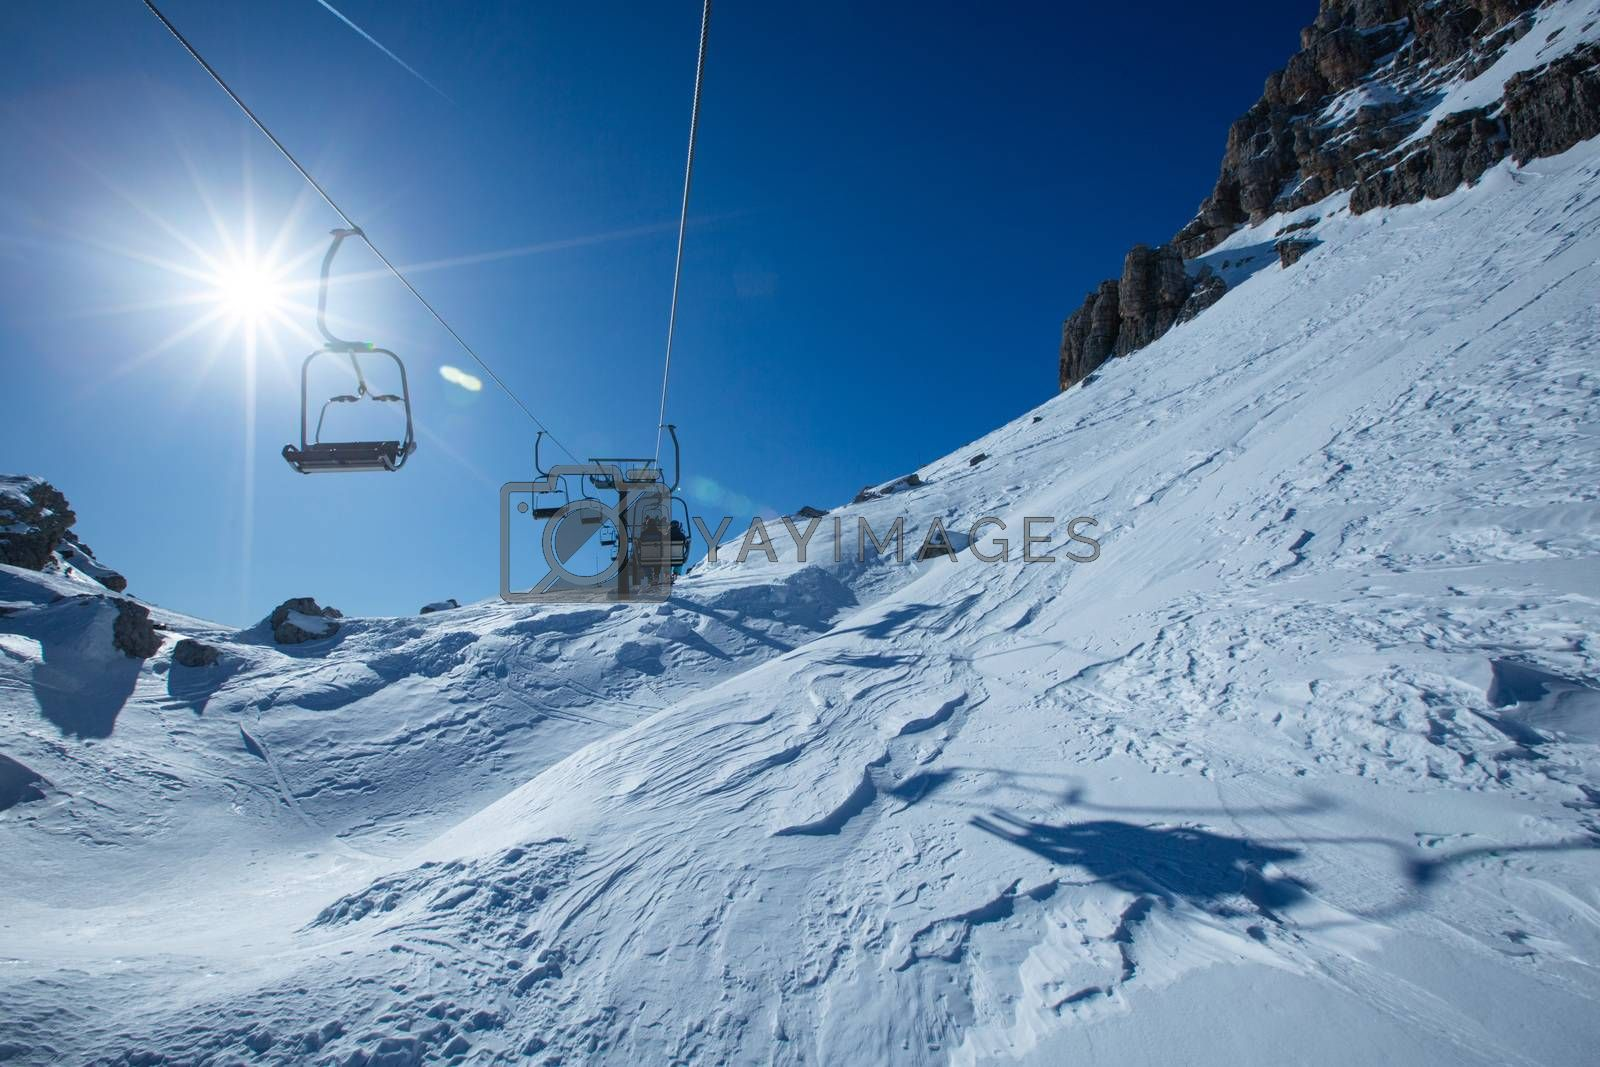 Ski lift chairs on bright winter day Dolomities Dolomiti Italy in wintertime beautiful alps mountains and ski slope Cortina d'Ampezzo Cinque torri mountain peaks famous landscape skiing resort area